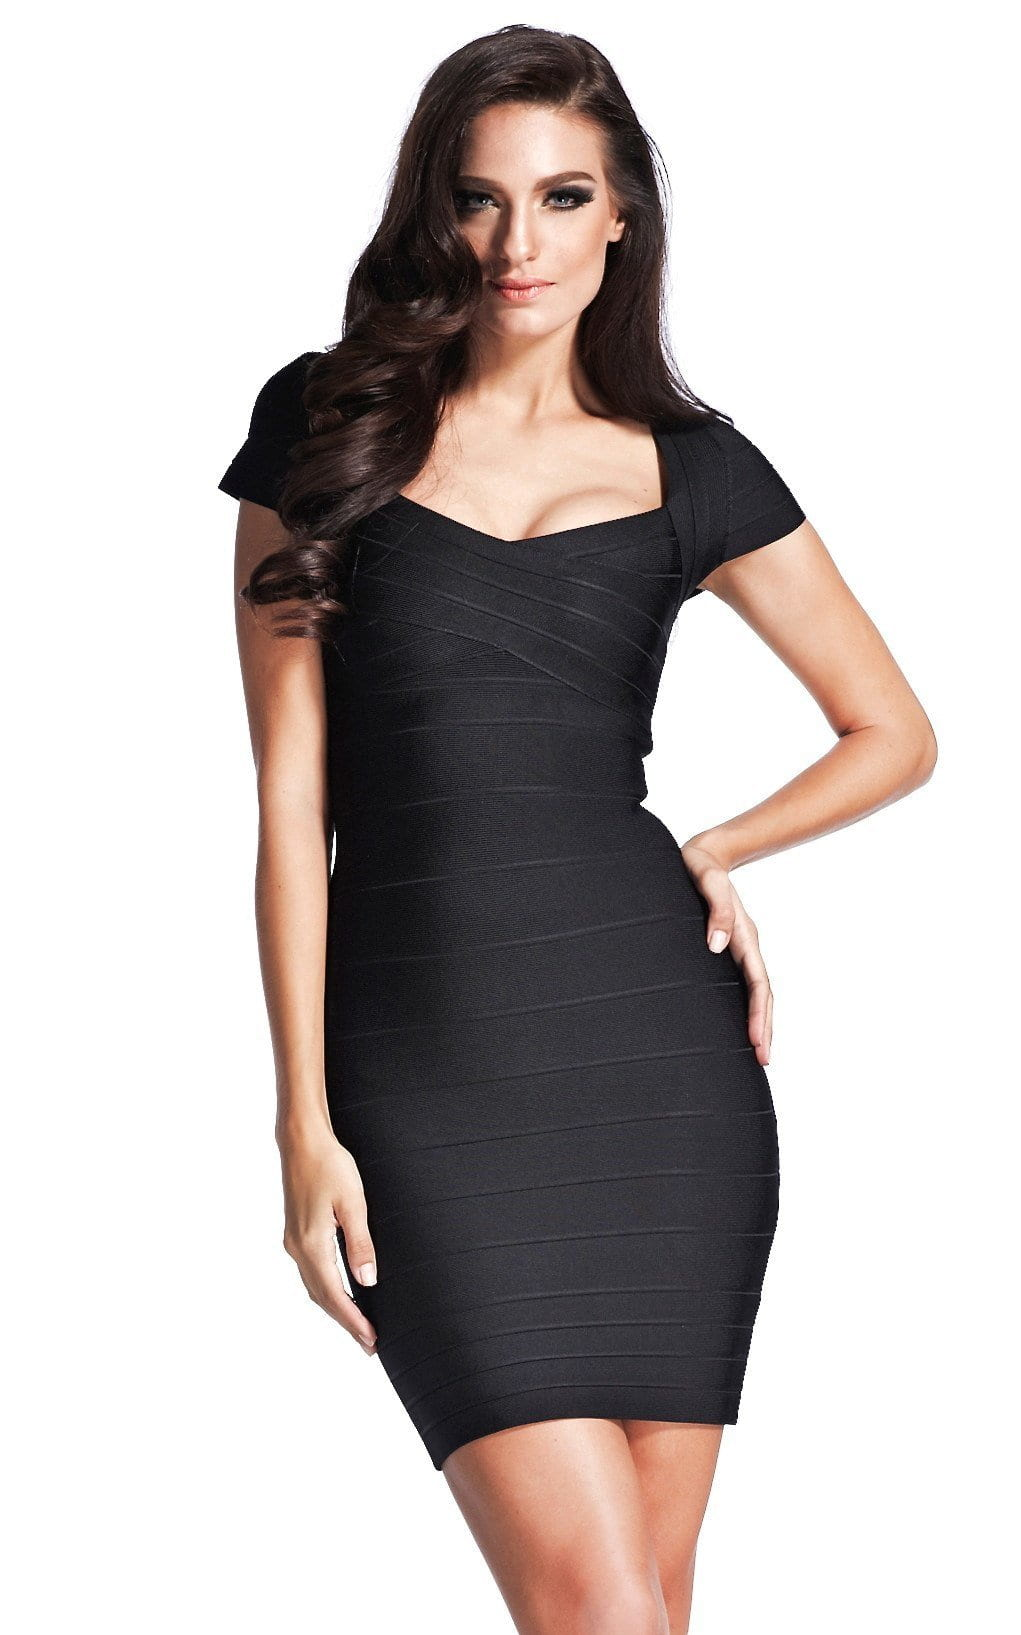 Black Classic Bandage Dress u2013 The Kewl Shop